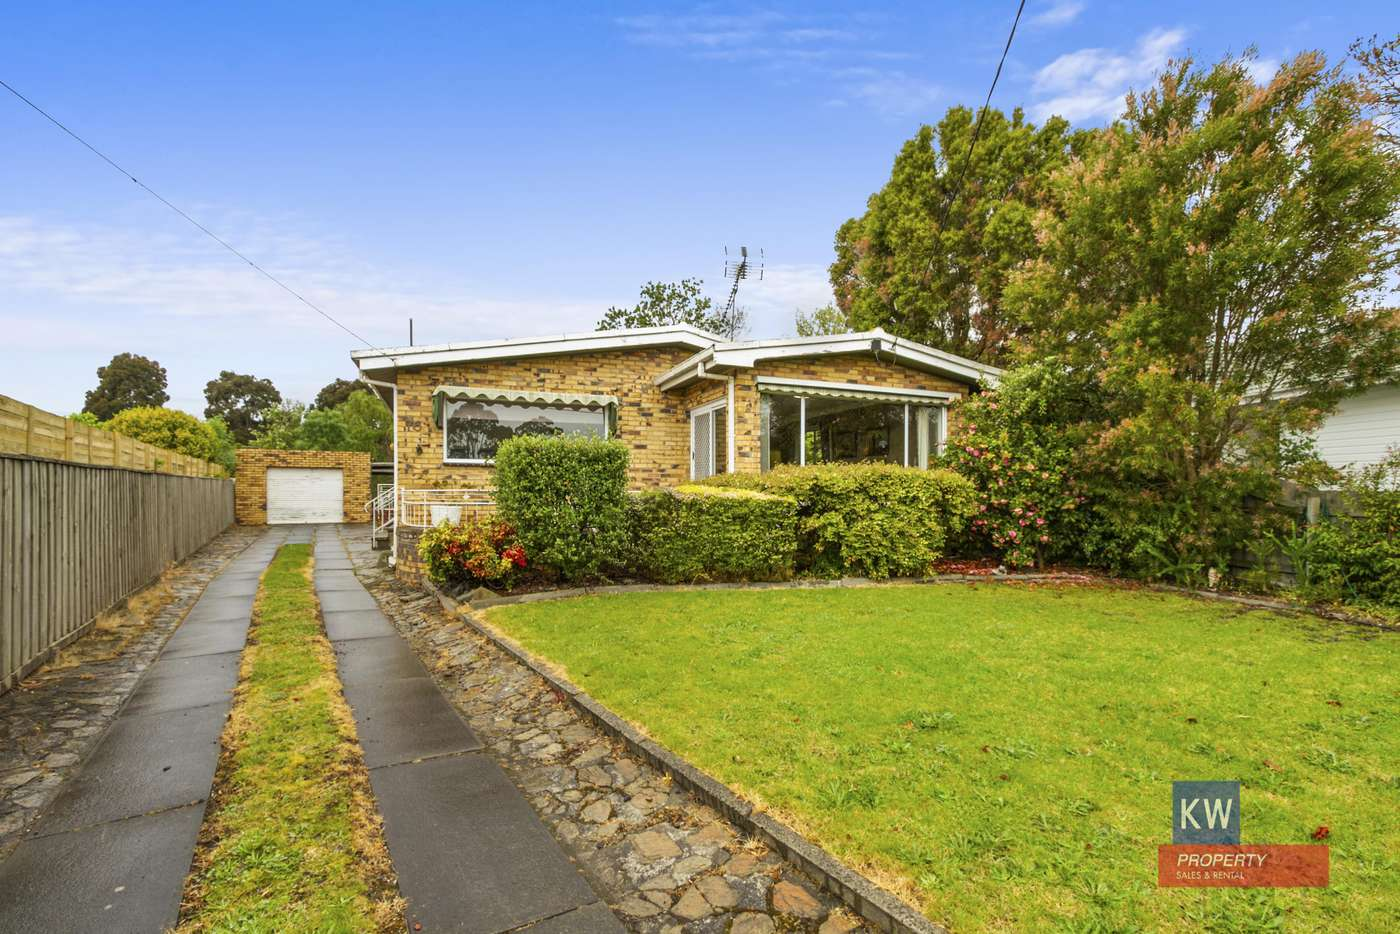 Main view of Homely house listing, 76 Wallace St, Morwell VIC 3840